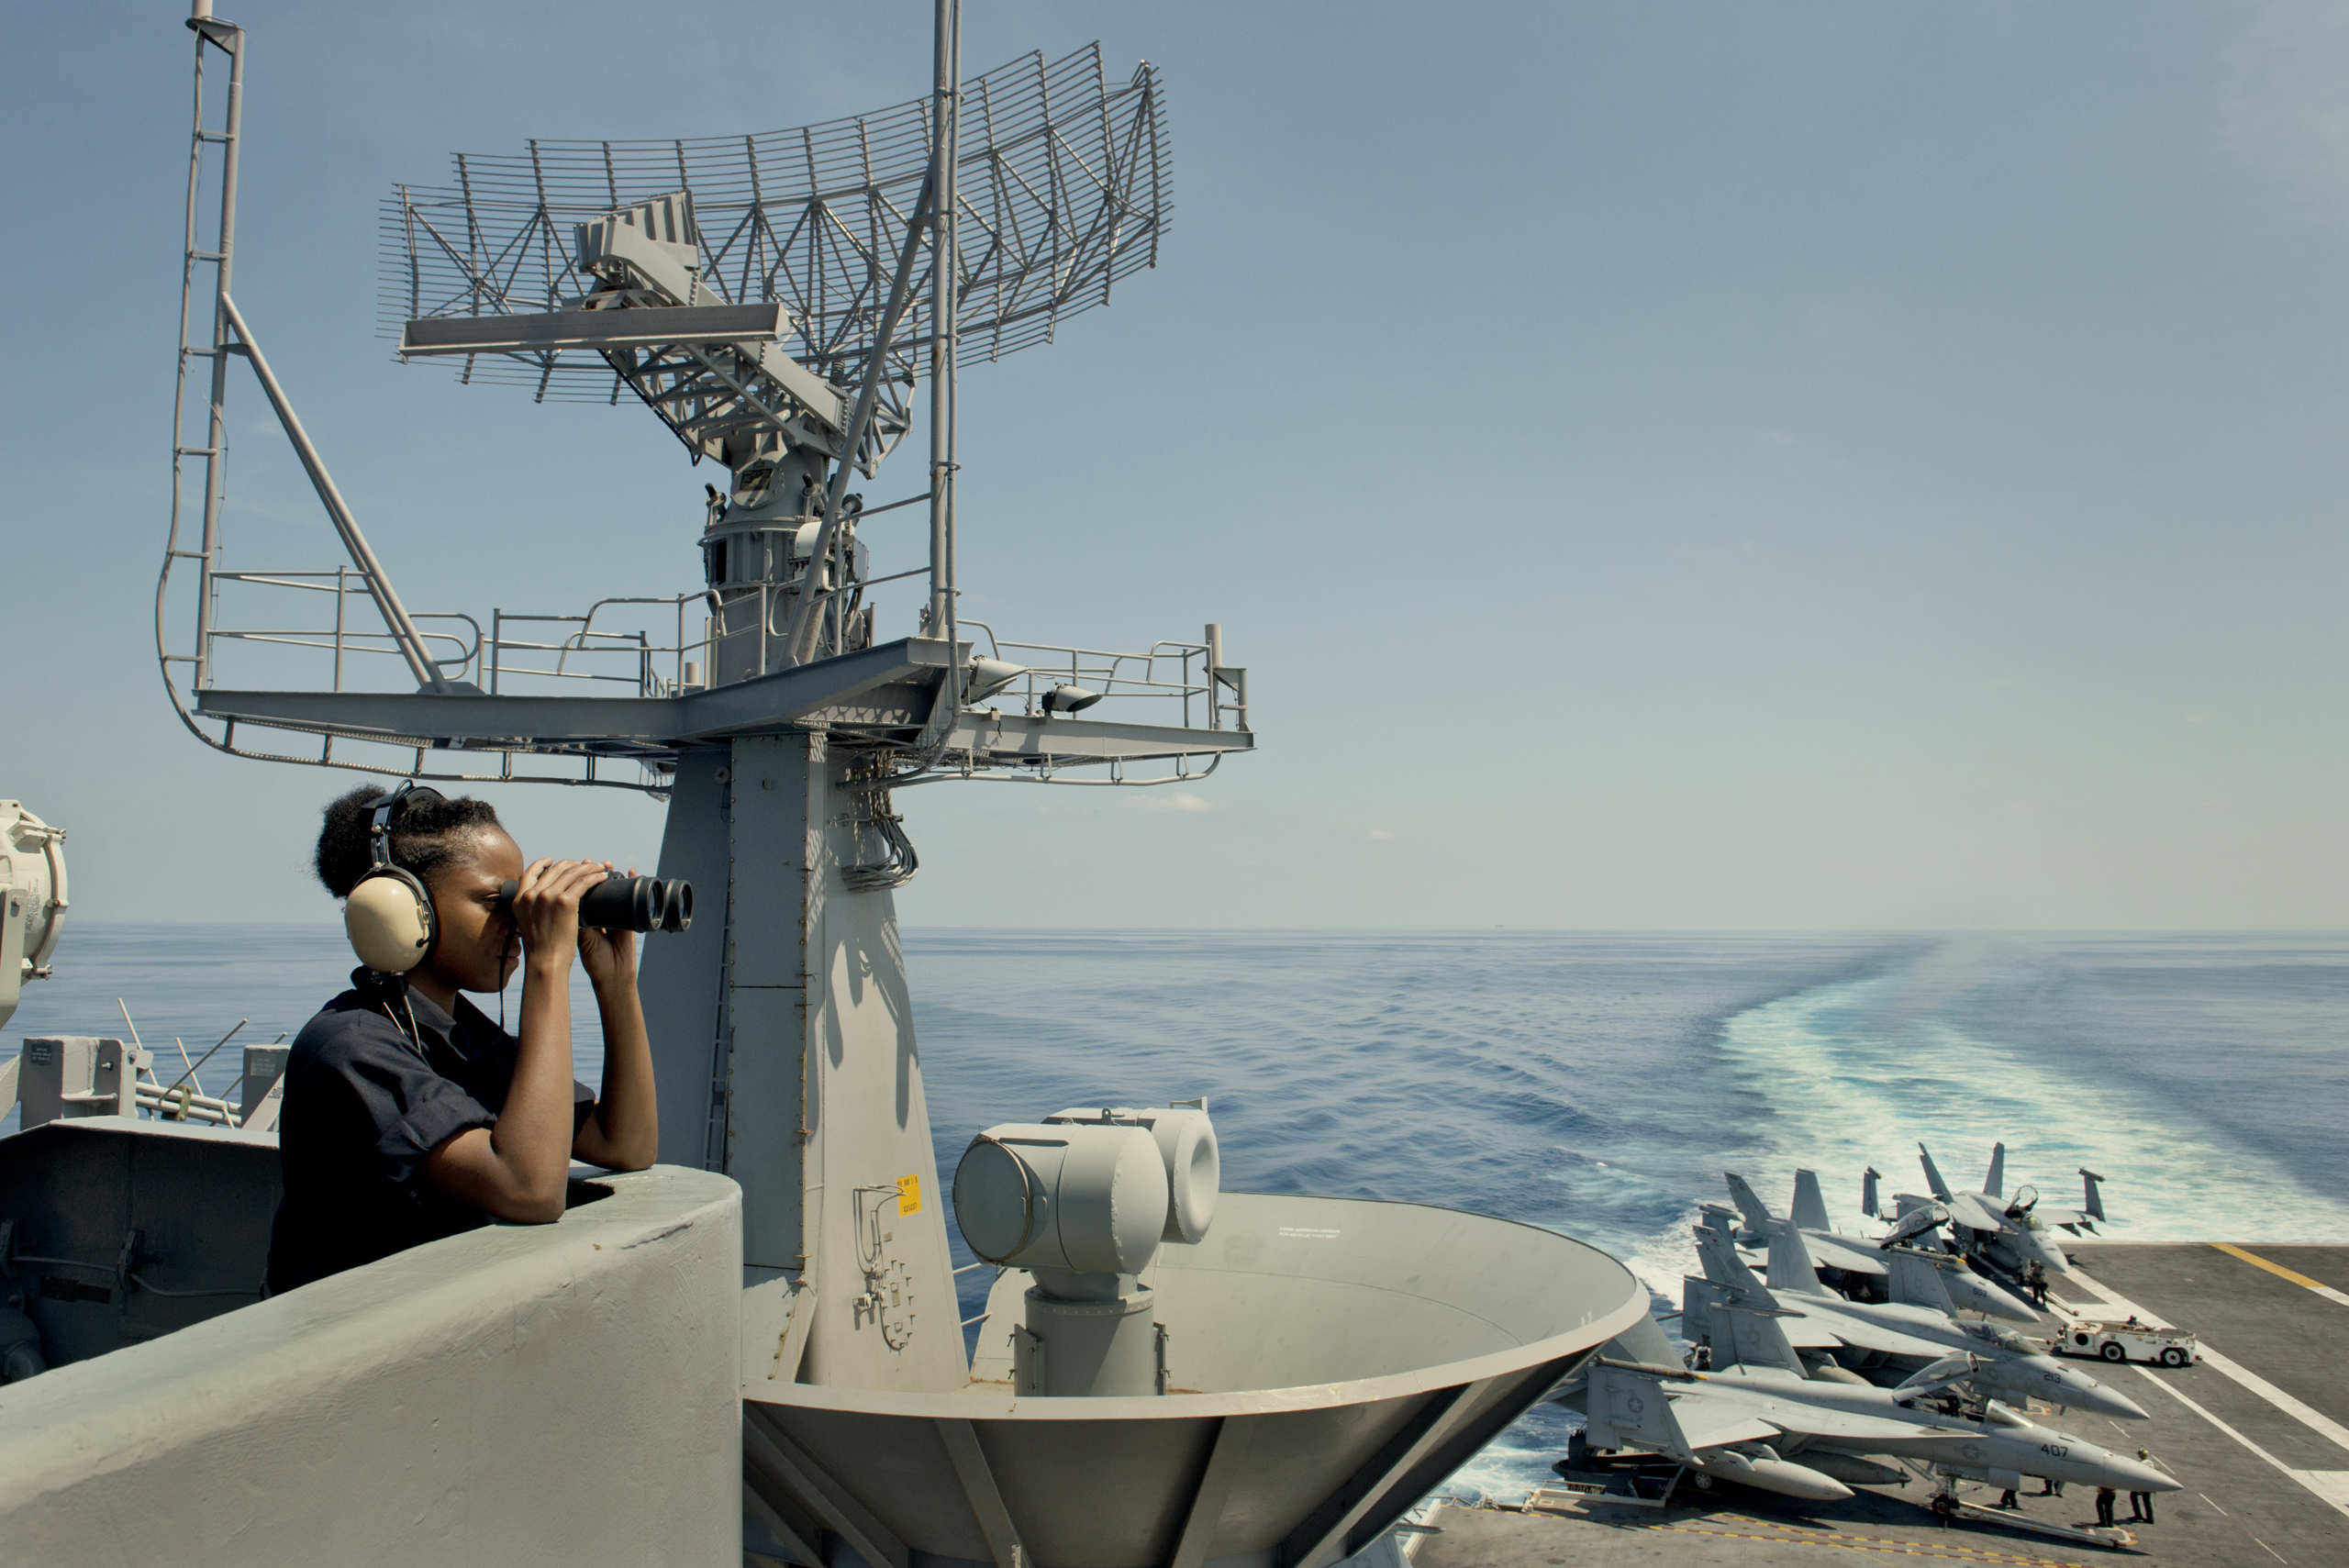 A lookout watches on the bridge of the U.S.S. John C. Stennis aircraft carrier in the South China Sea on April 25, 2016